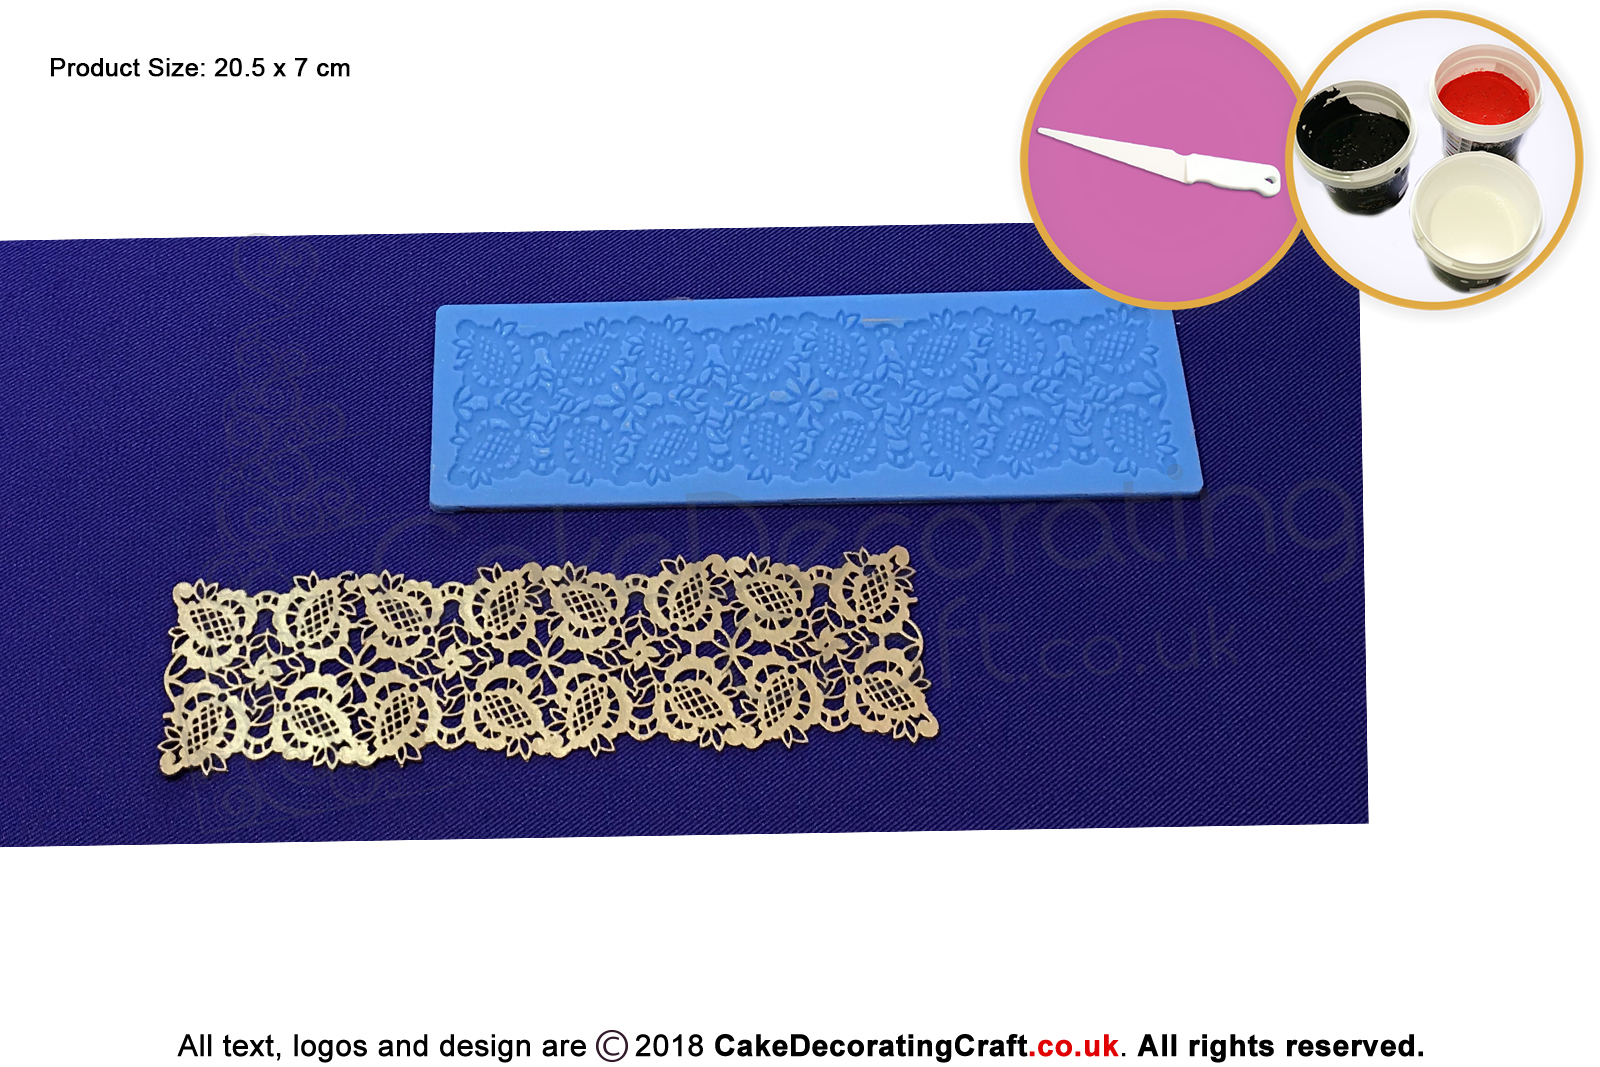 Pine Ribbon Cake Lace Mats Cake Decorating Starter Kit Cake